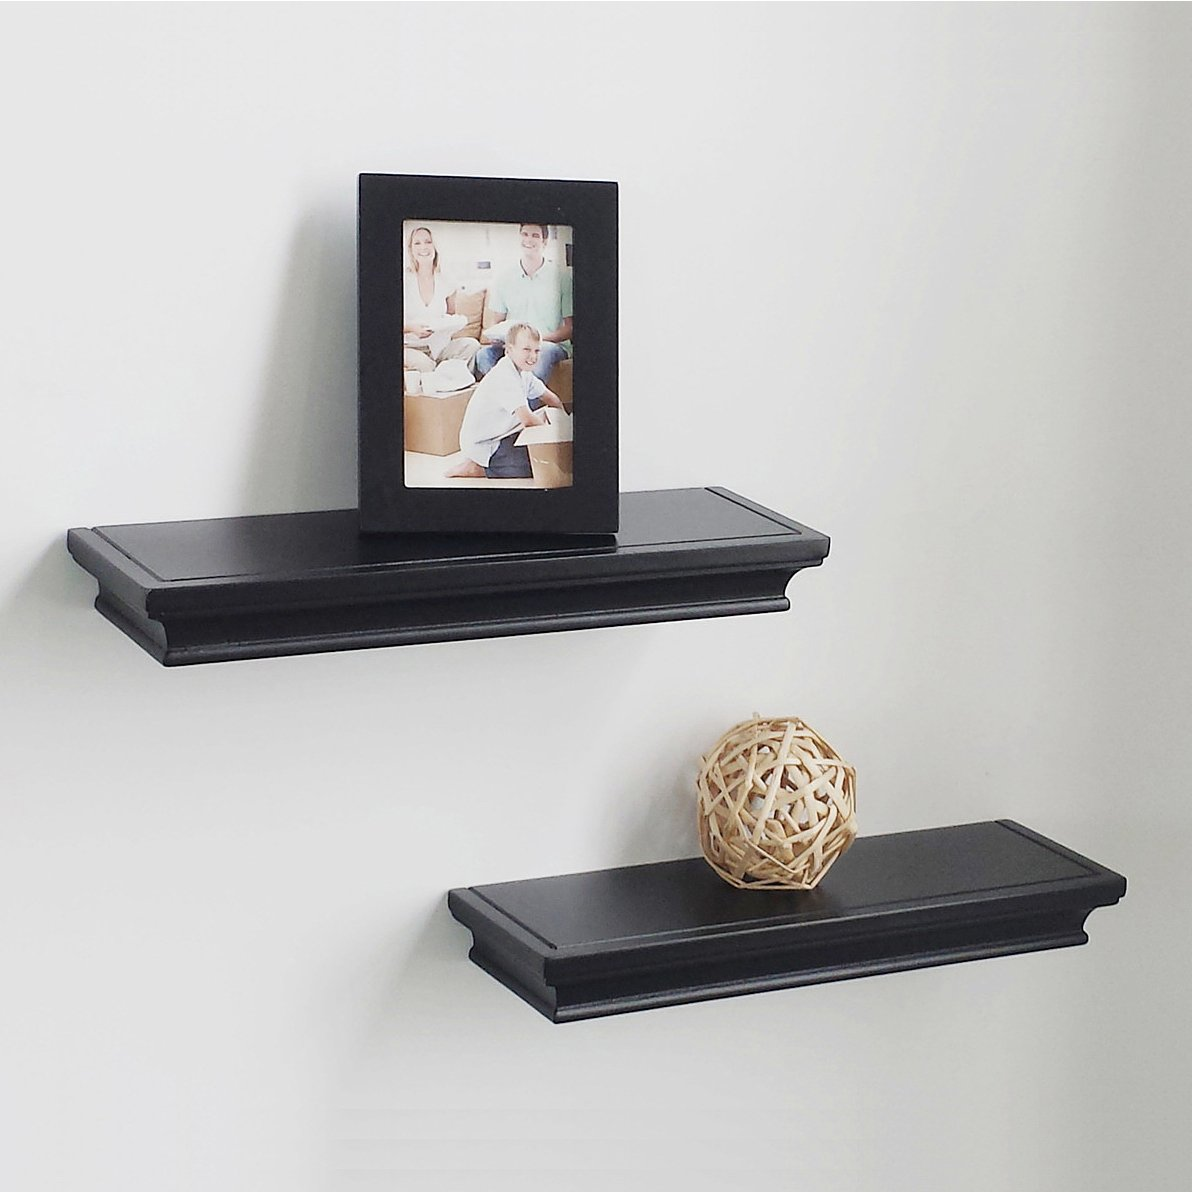 hao set approx depth floating wall shelf wooden ledge shelves household storage shelving black home kitchen decorative small shoe bench bookcase plans pdf hangers two mounted